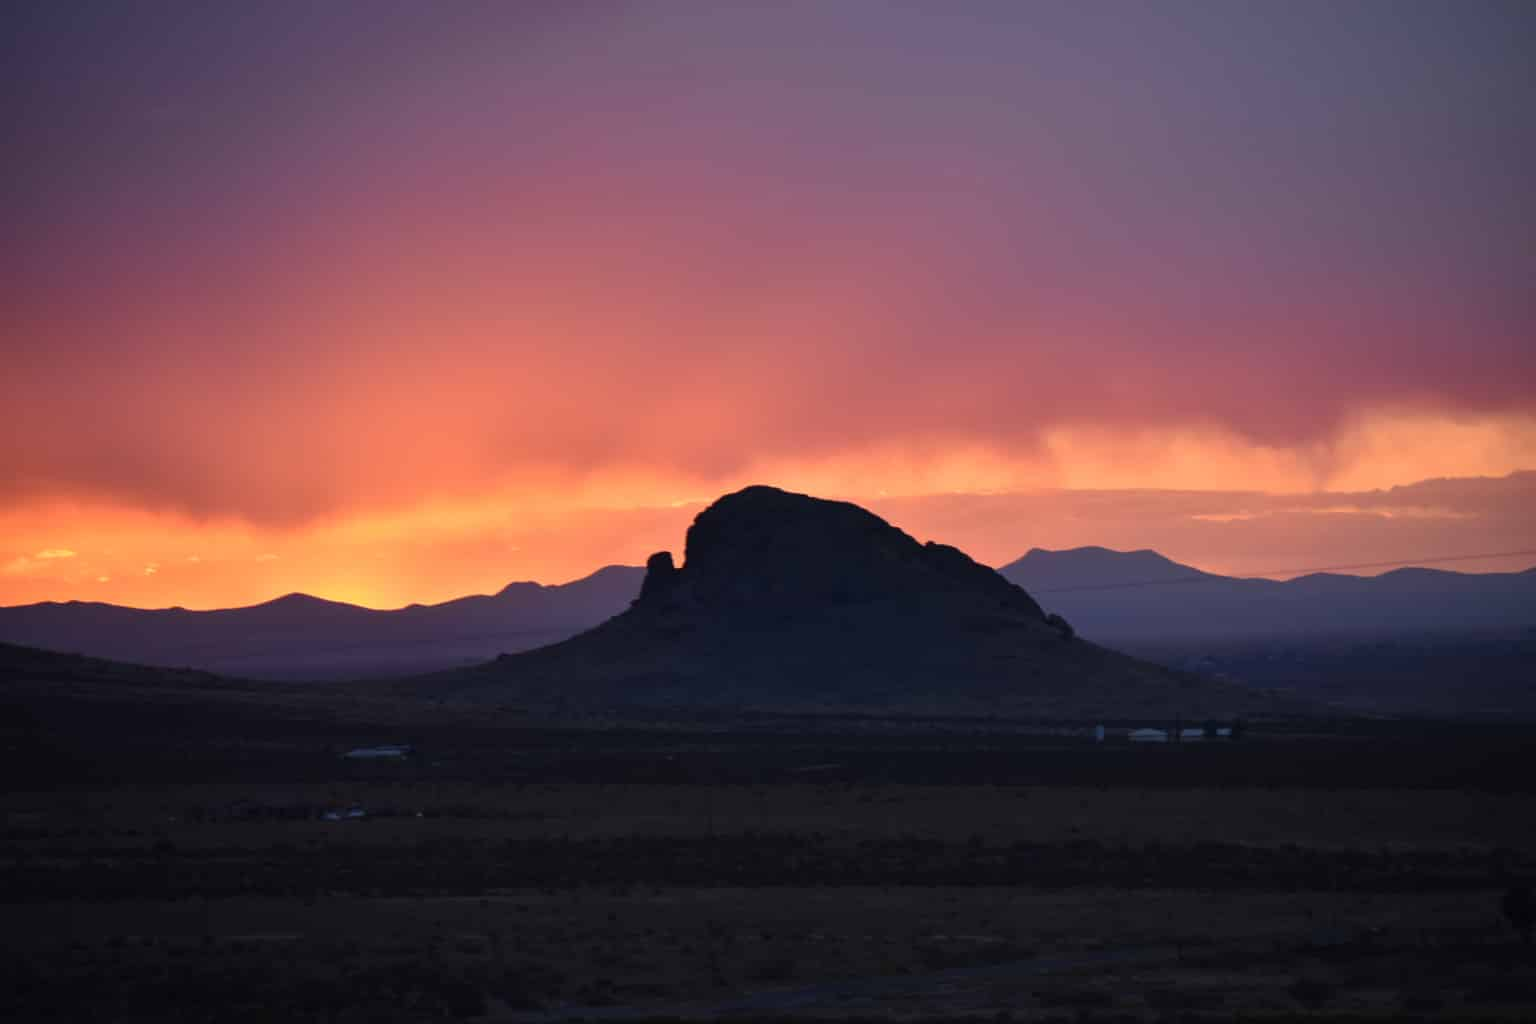 Camping at Rockhound State Park- Deming, NM